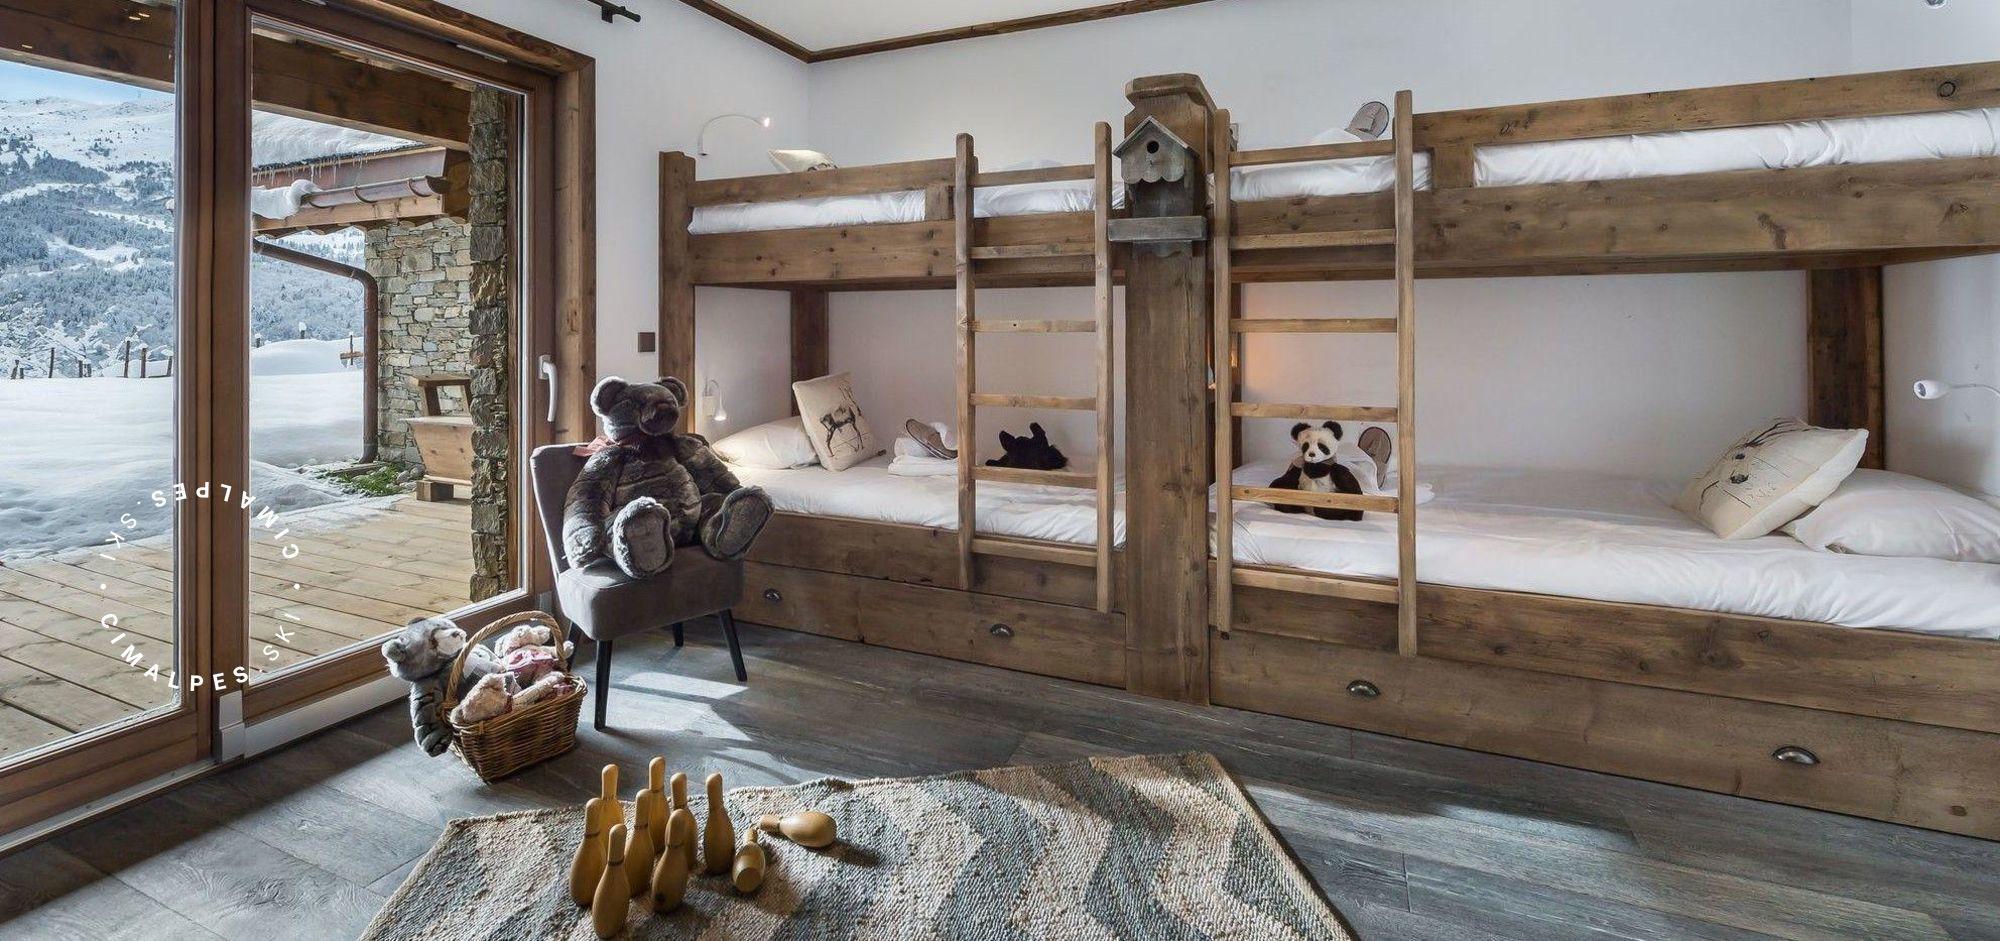 Chambre enfant - Chalet Queen Mijane - Méribel Village